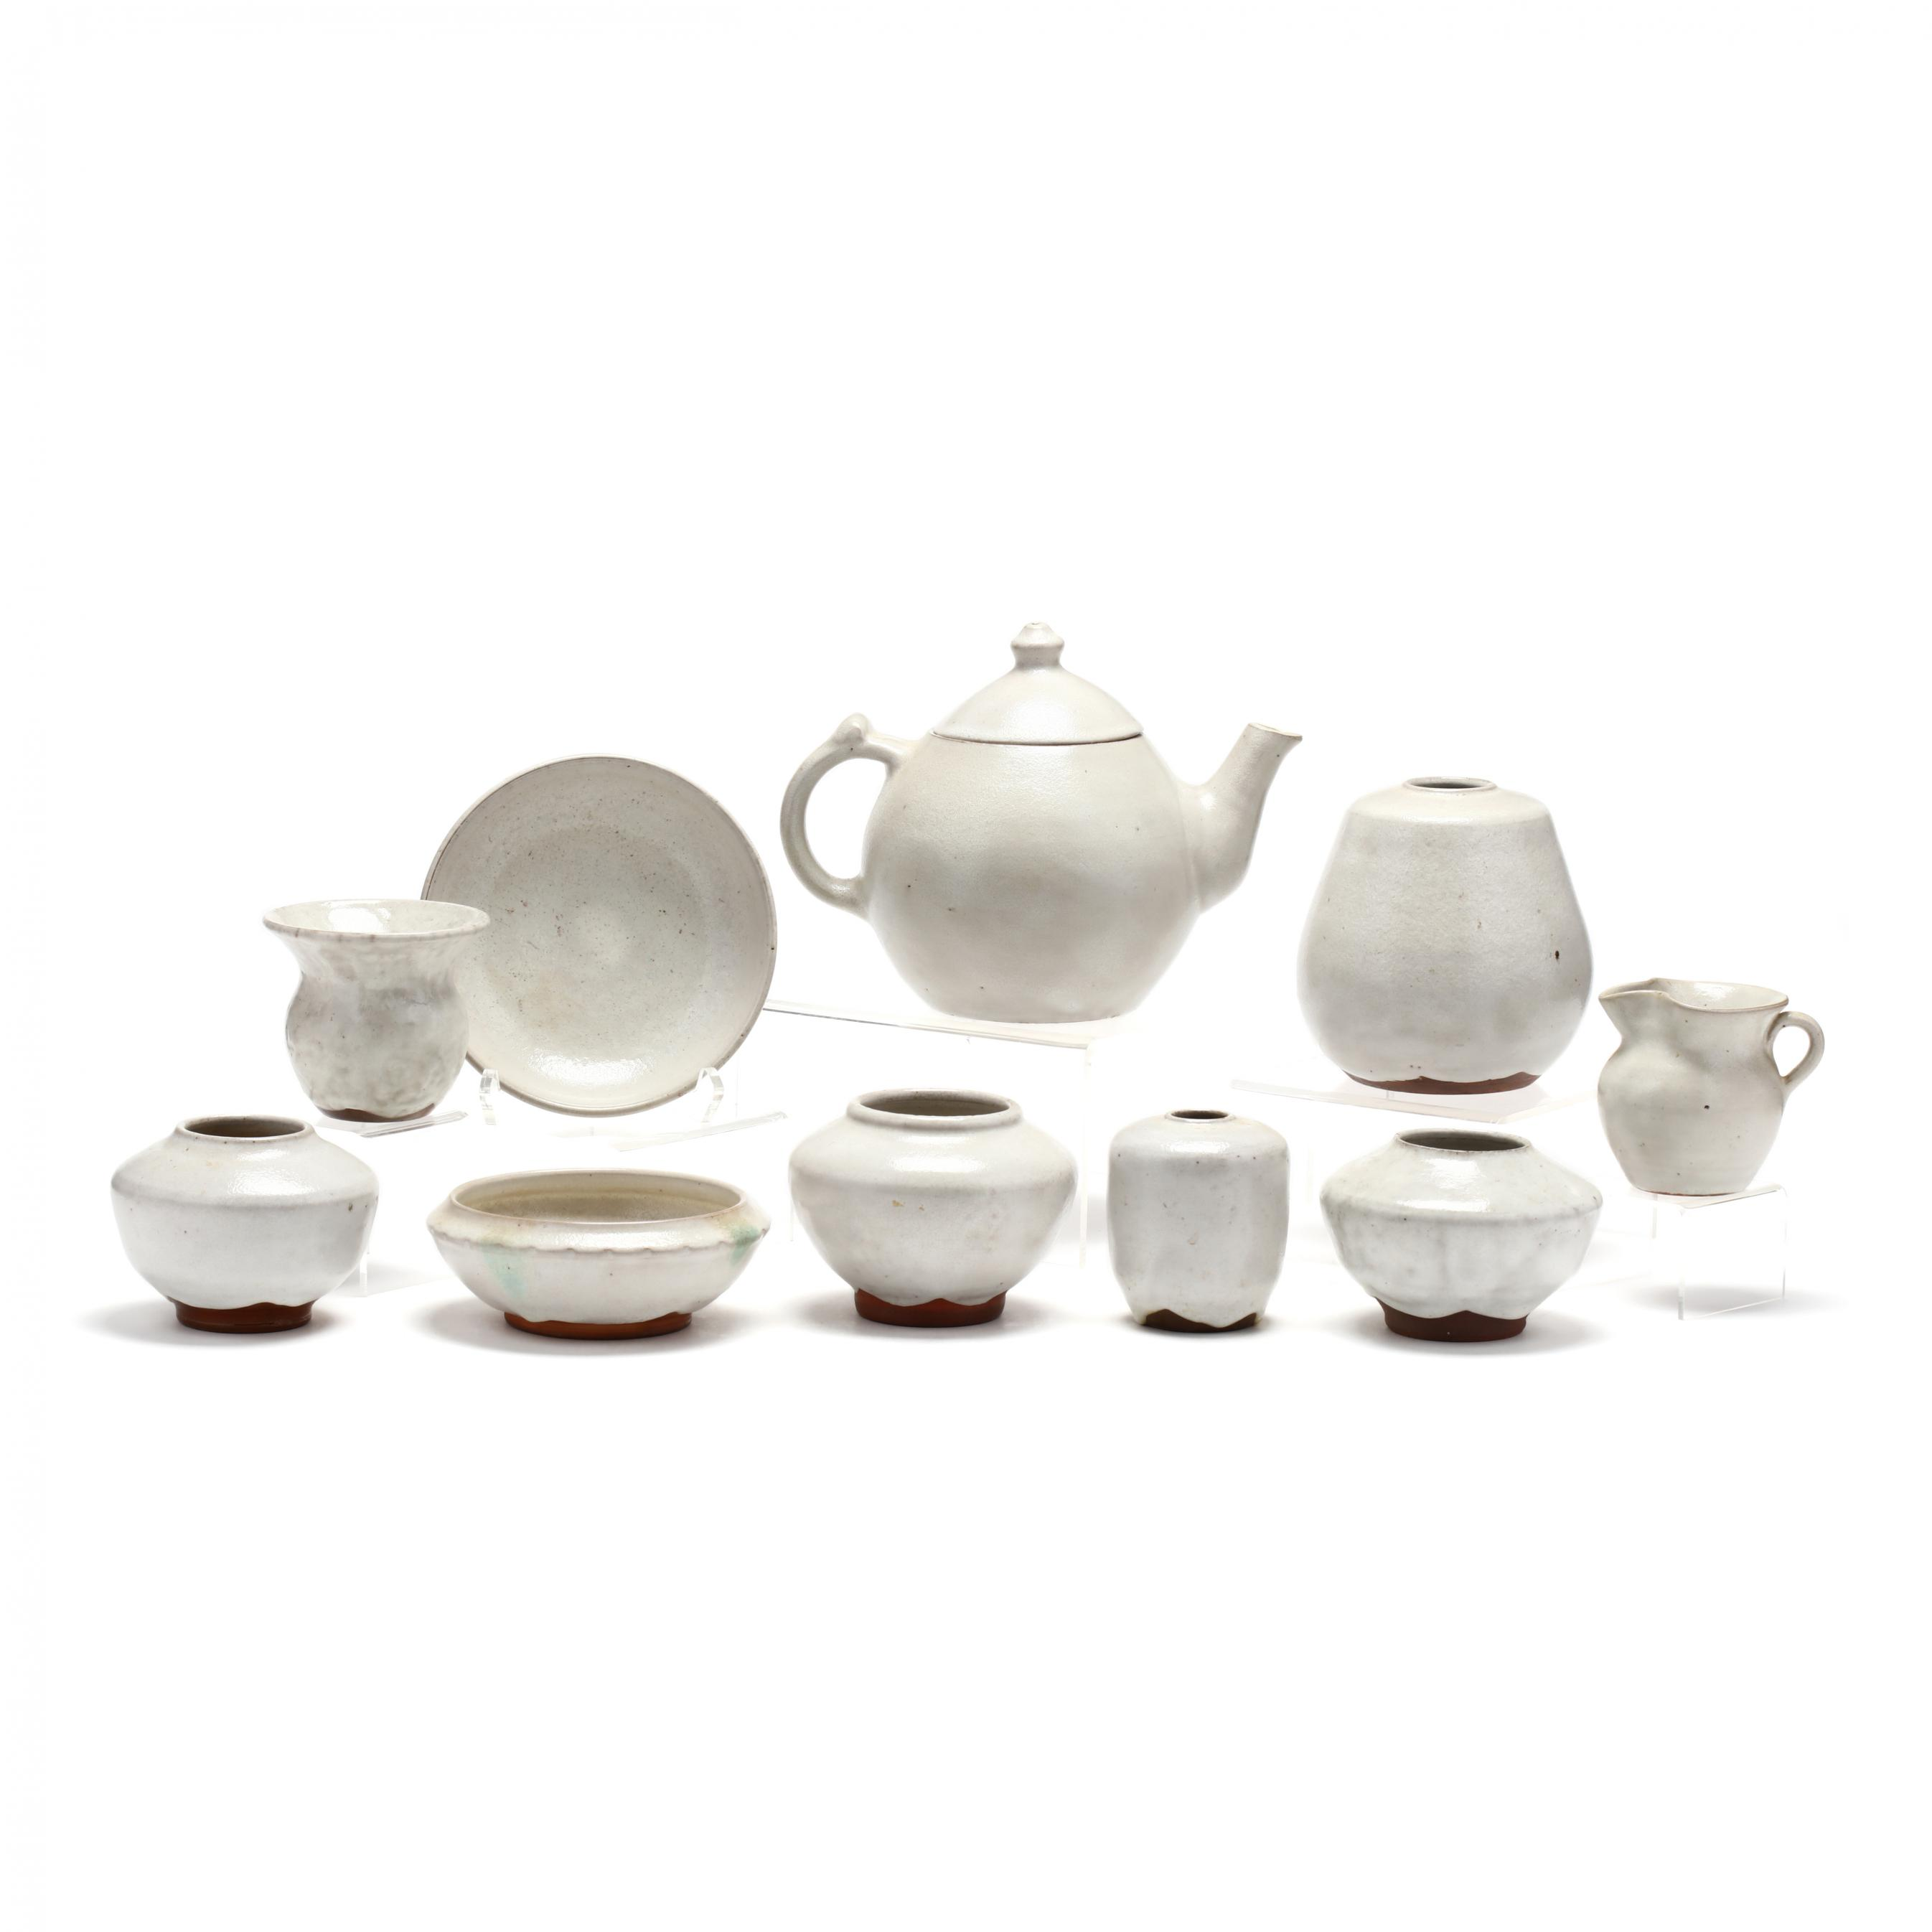 a-group-of-ben-owen-master-potter-chinese-white-pottery